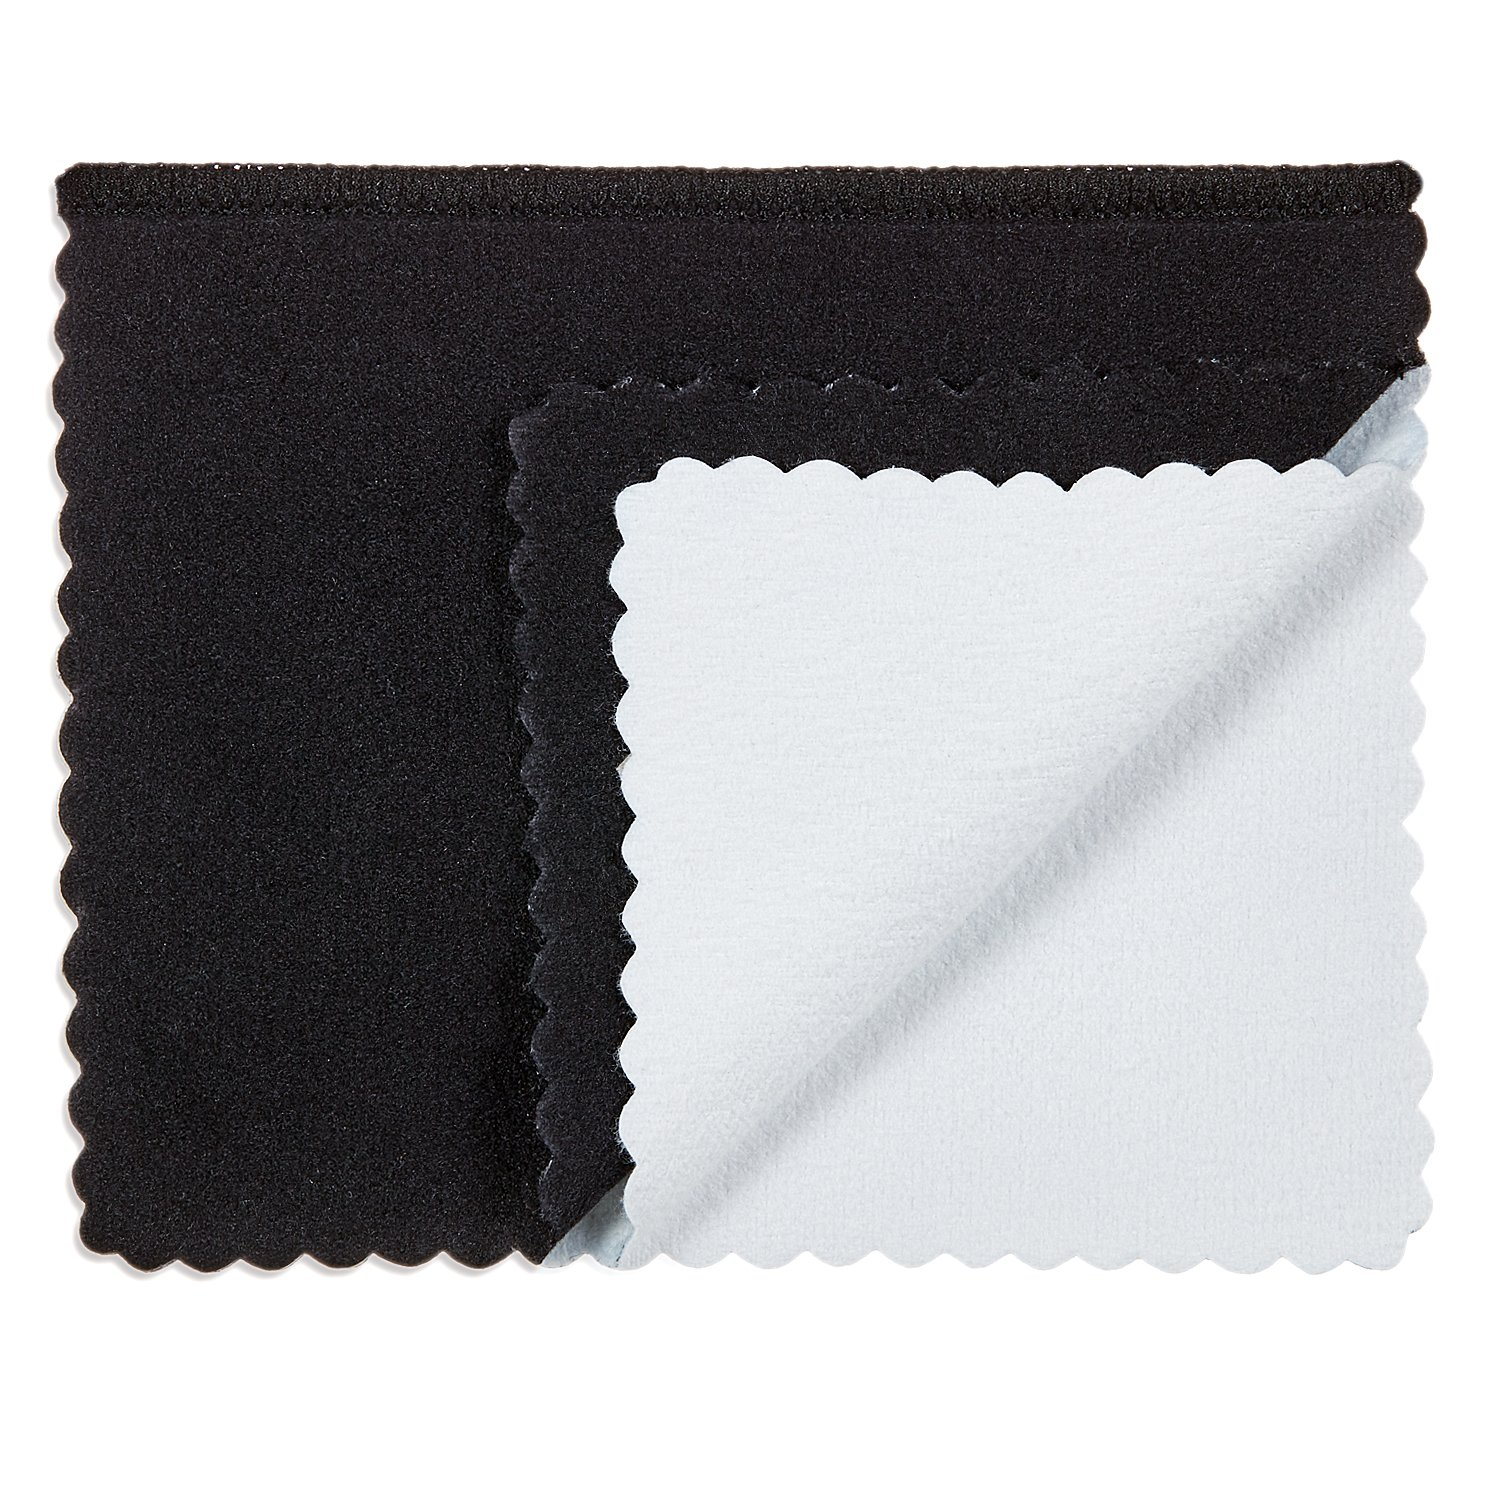 3 Pack The Bling Factory Deluxe Microfiber Jewelry Cleaning /& Polishing Cloth w//Dual Layers